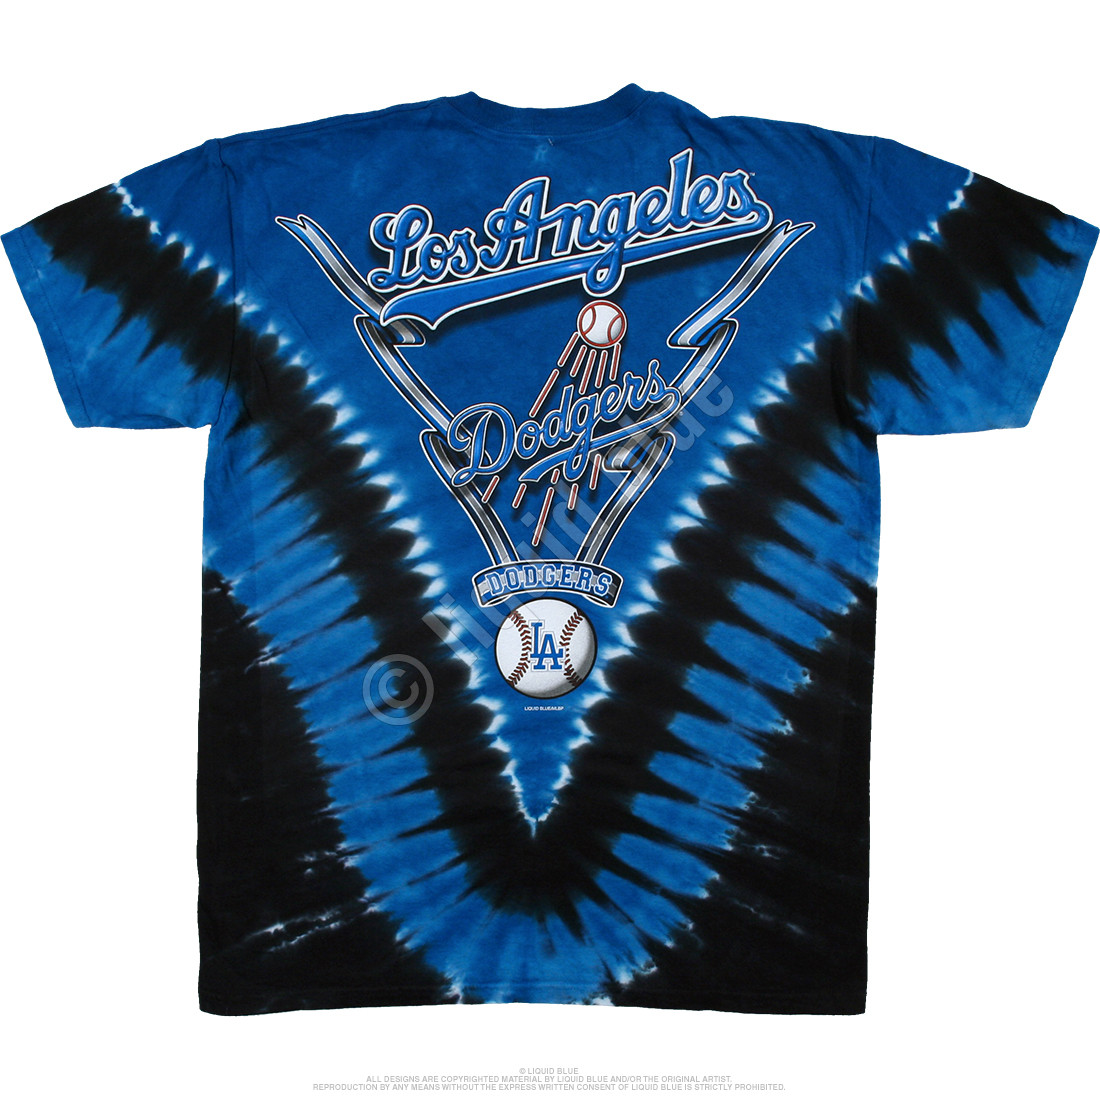 Los Angeles Dodgers V Tie-Dye T-Shirt